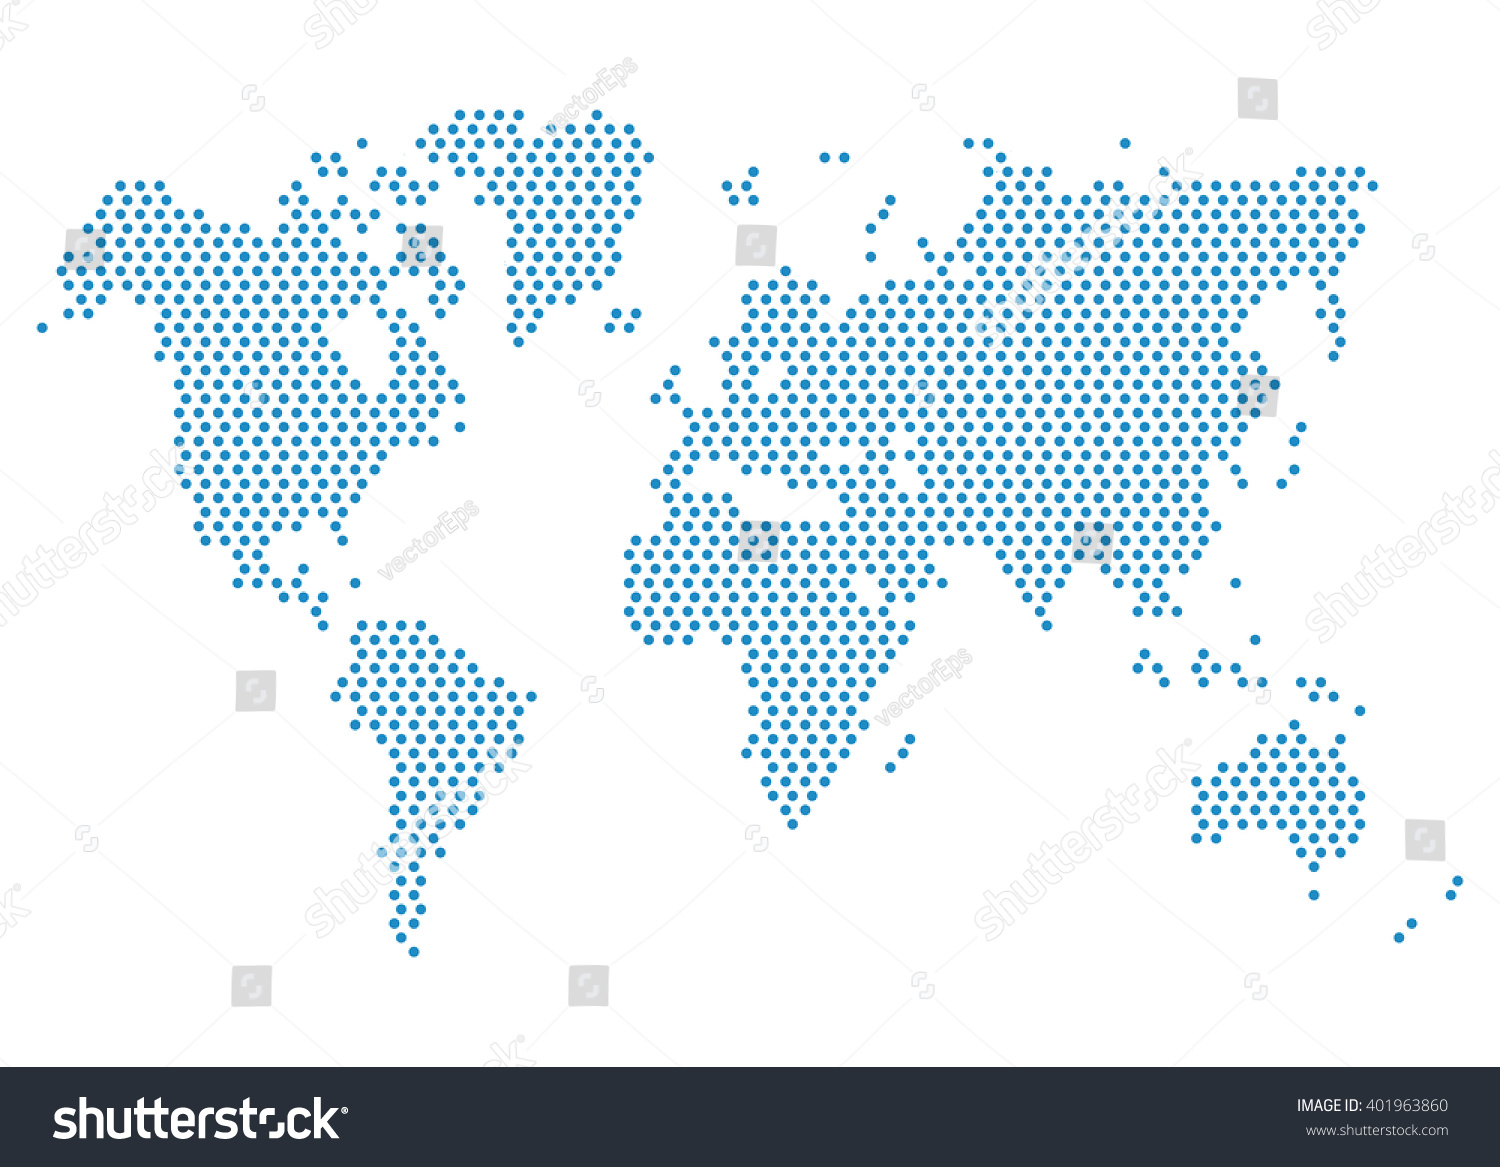 world map background vector - photo #24